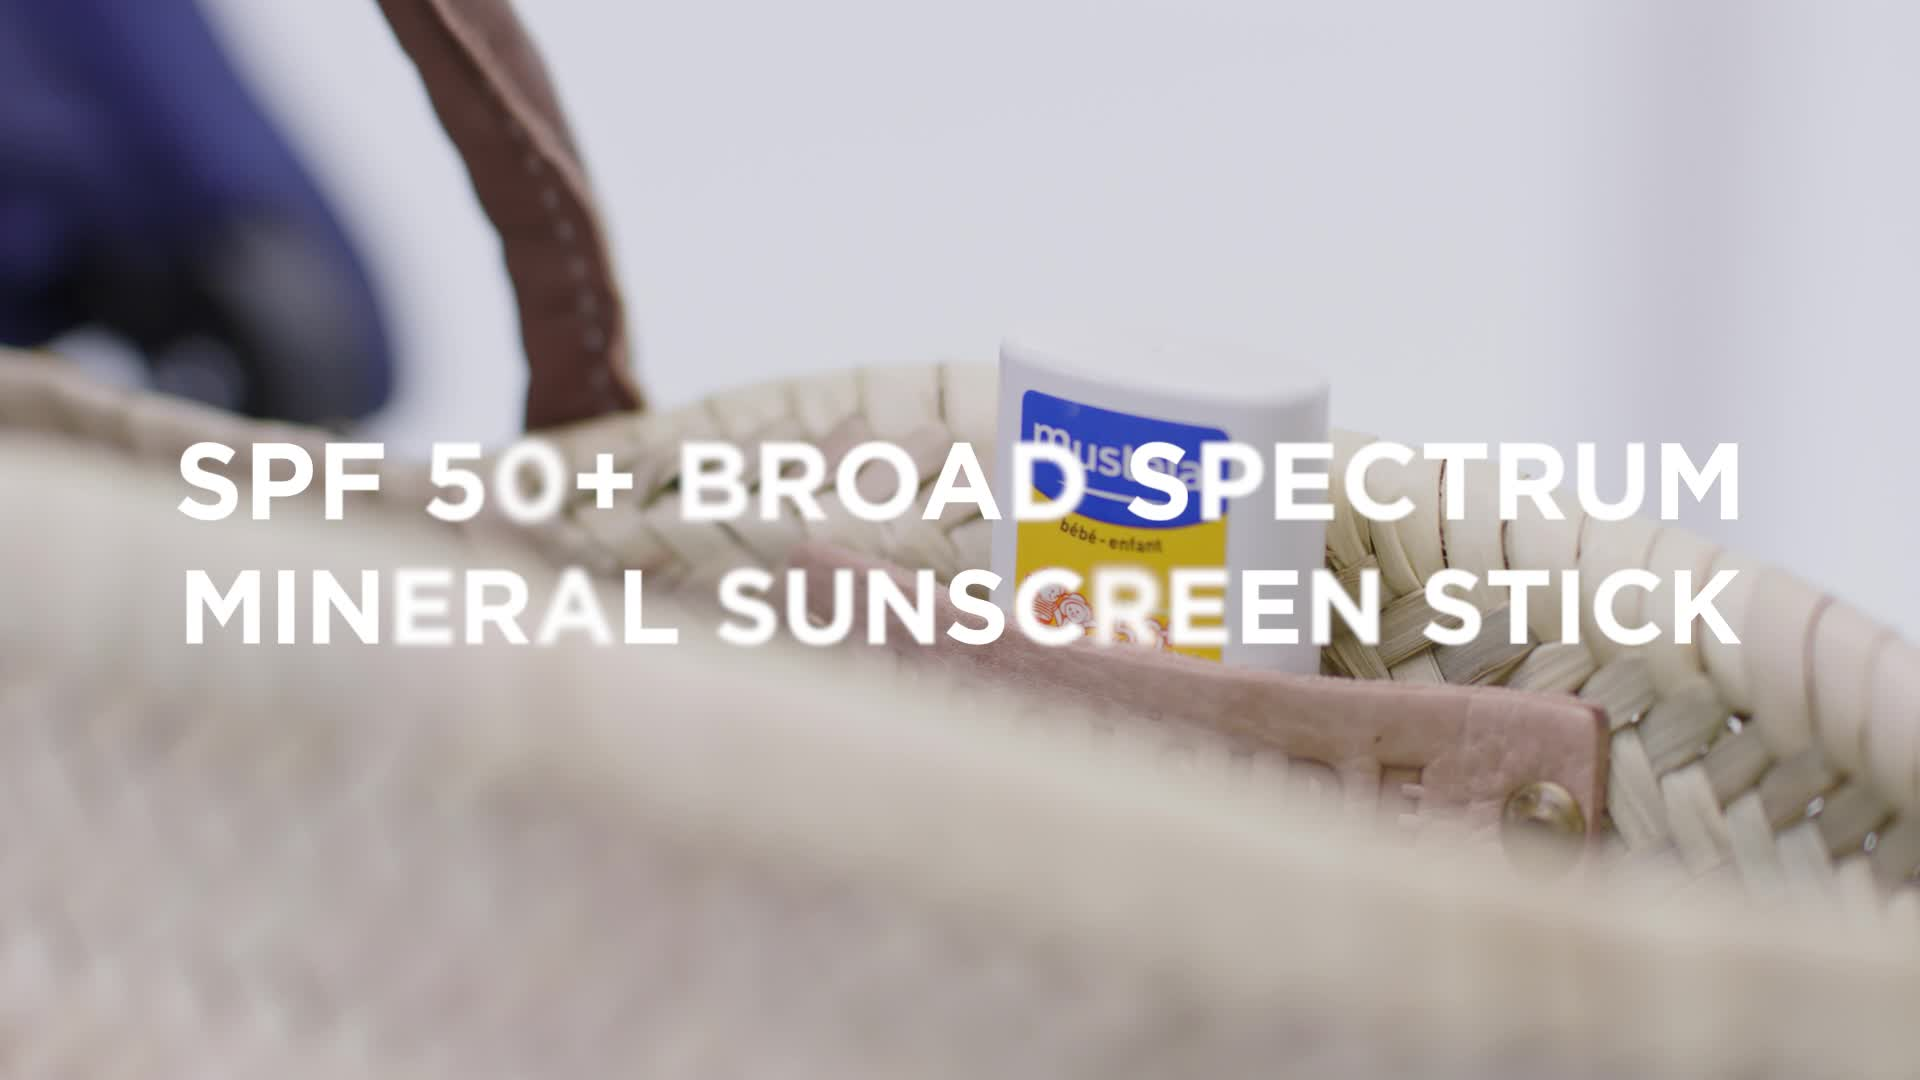 Mustela SPF 50+ .5 oz Broad Spectrum Mineral Sunscreen Stick